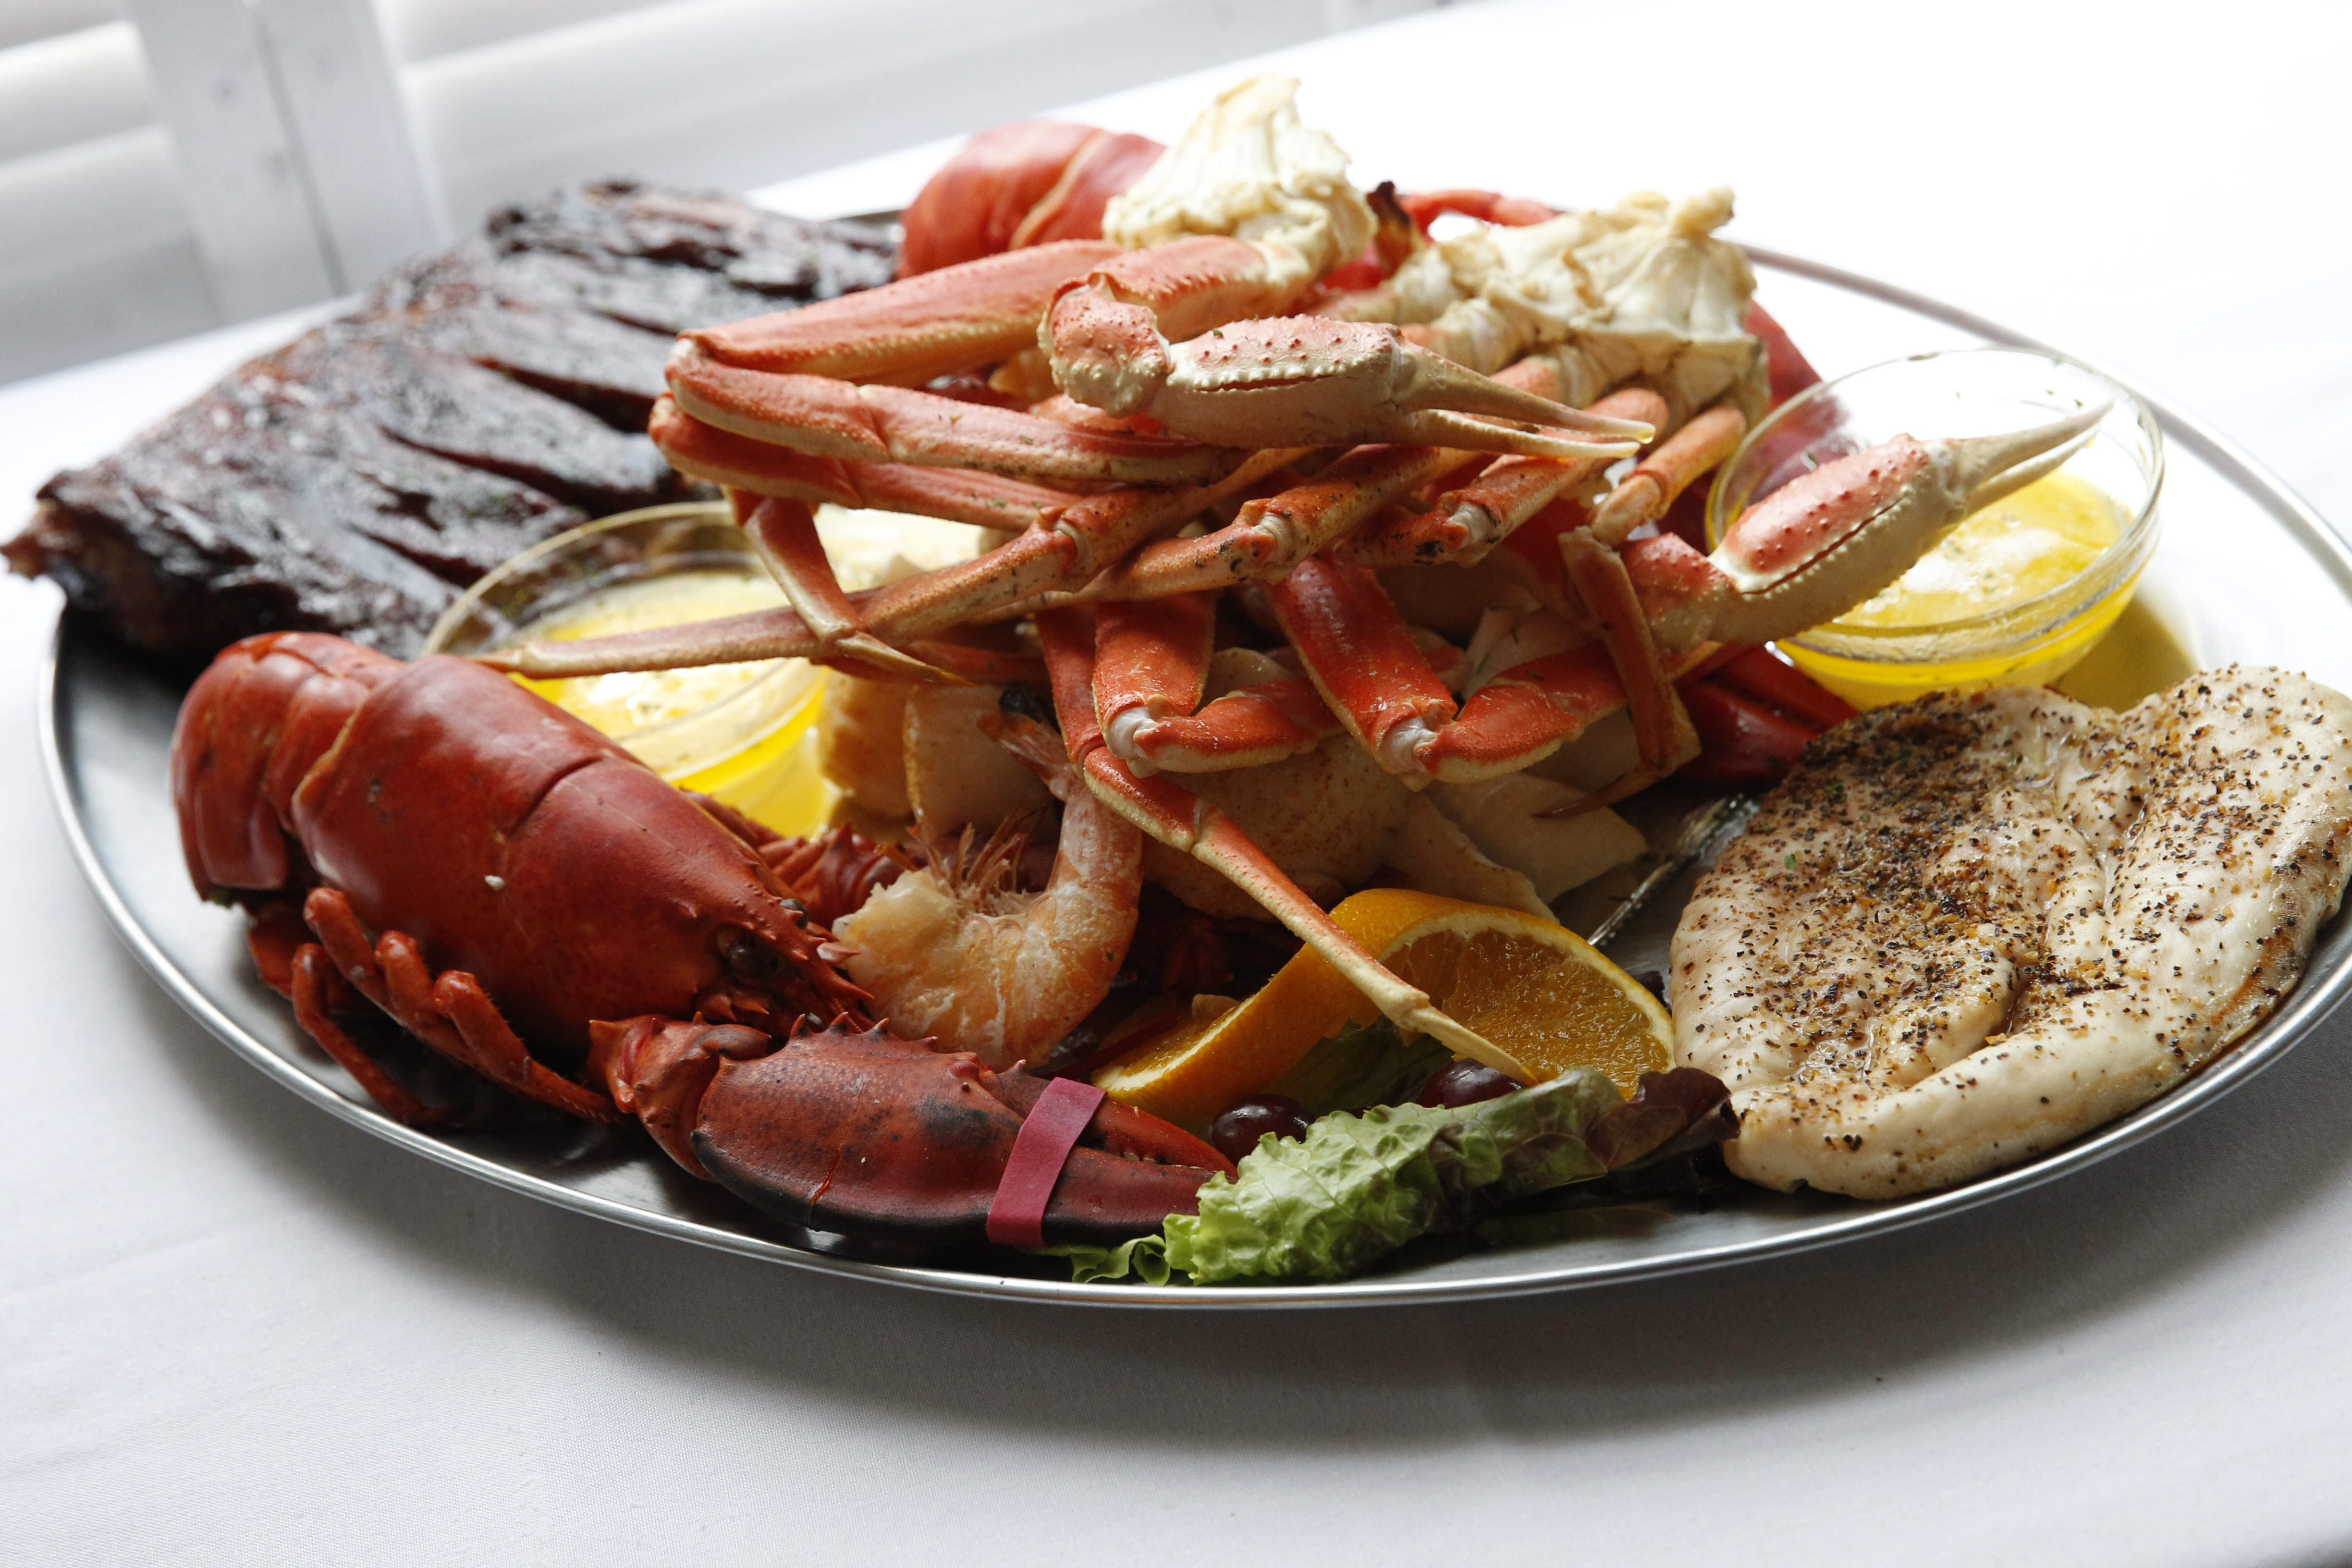 Two lobsters, six jumbo shrimp, six sea scallops, three clusters of snow crab, broiled haddock, a half-rack BBQ ribs and a chicken breast.